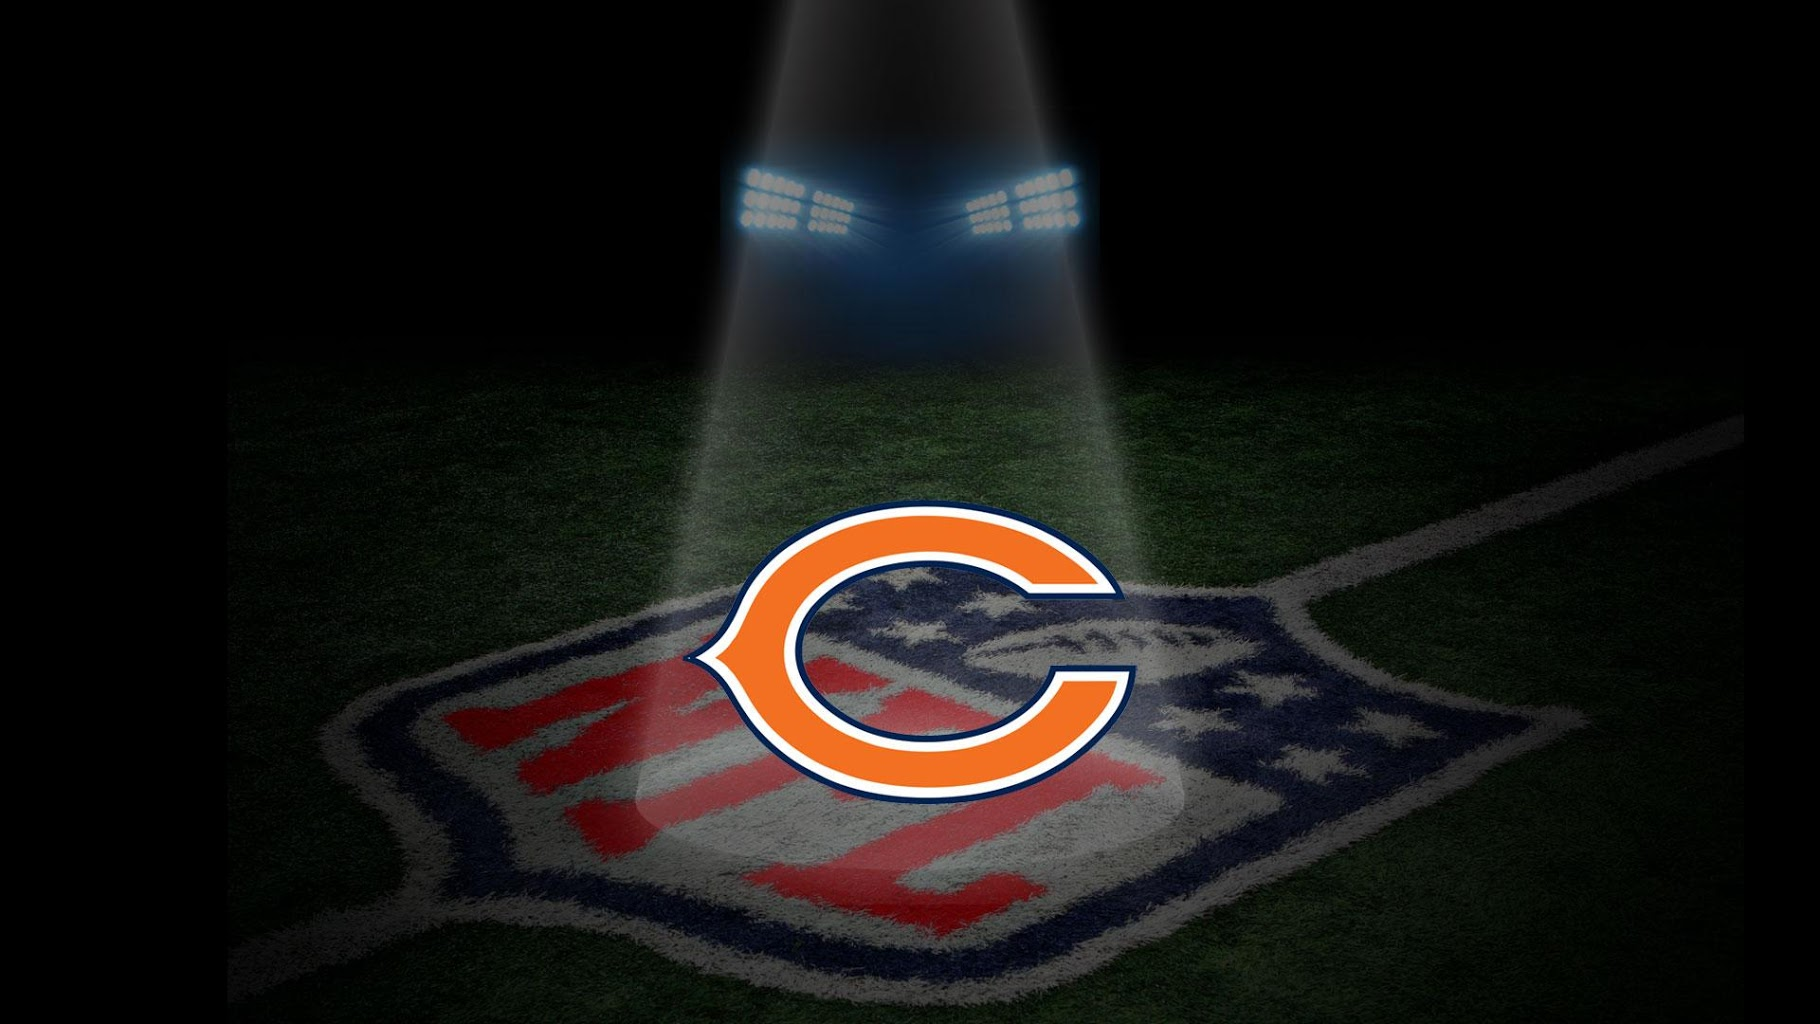 Chicago Bears Live Wallpaper 1820x1024